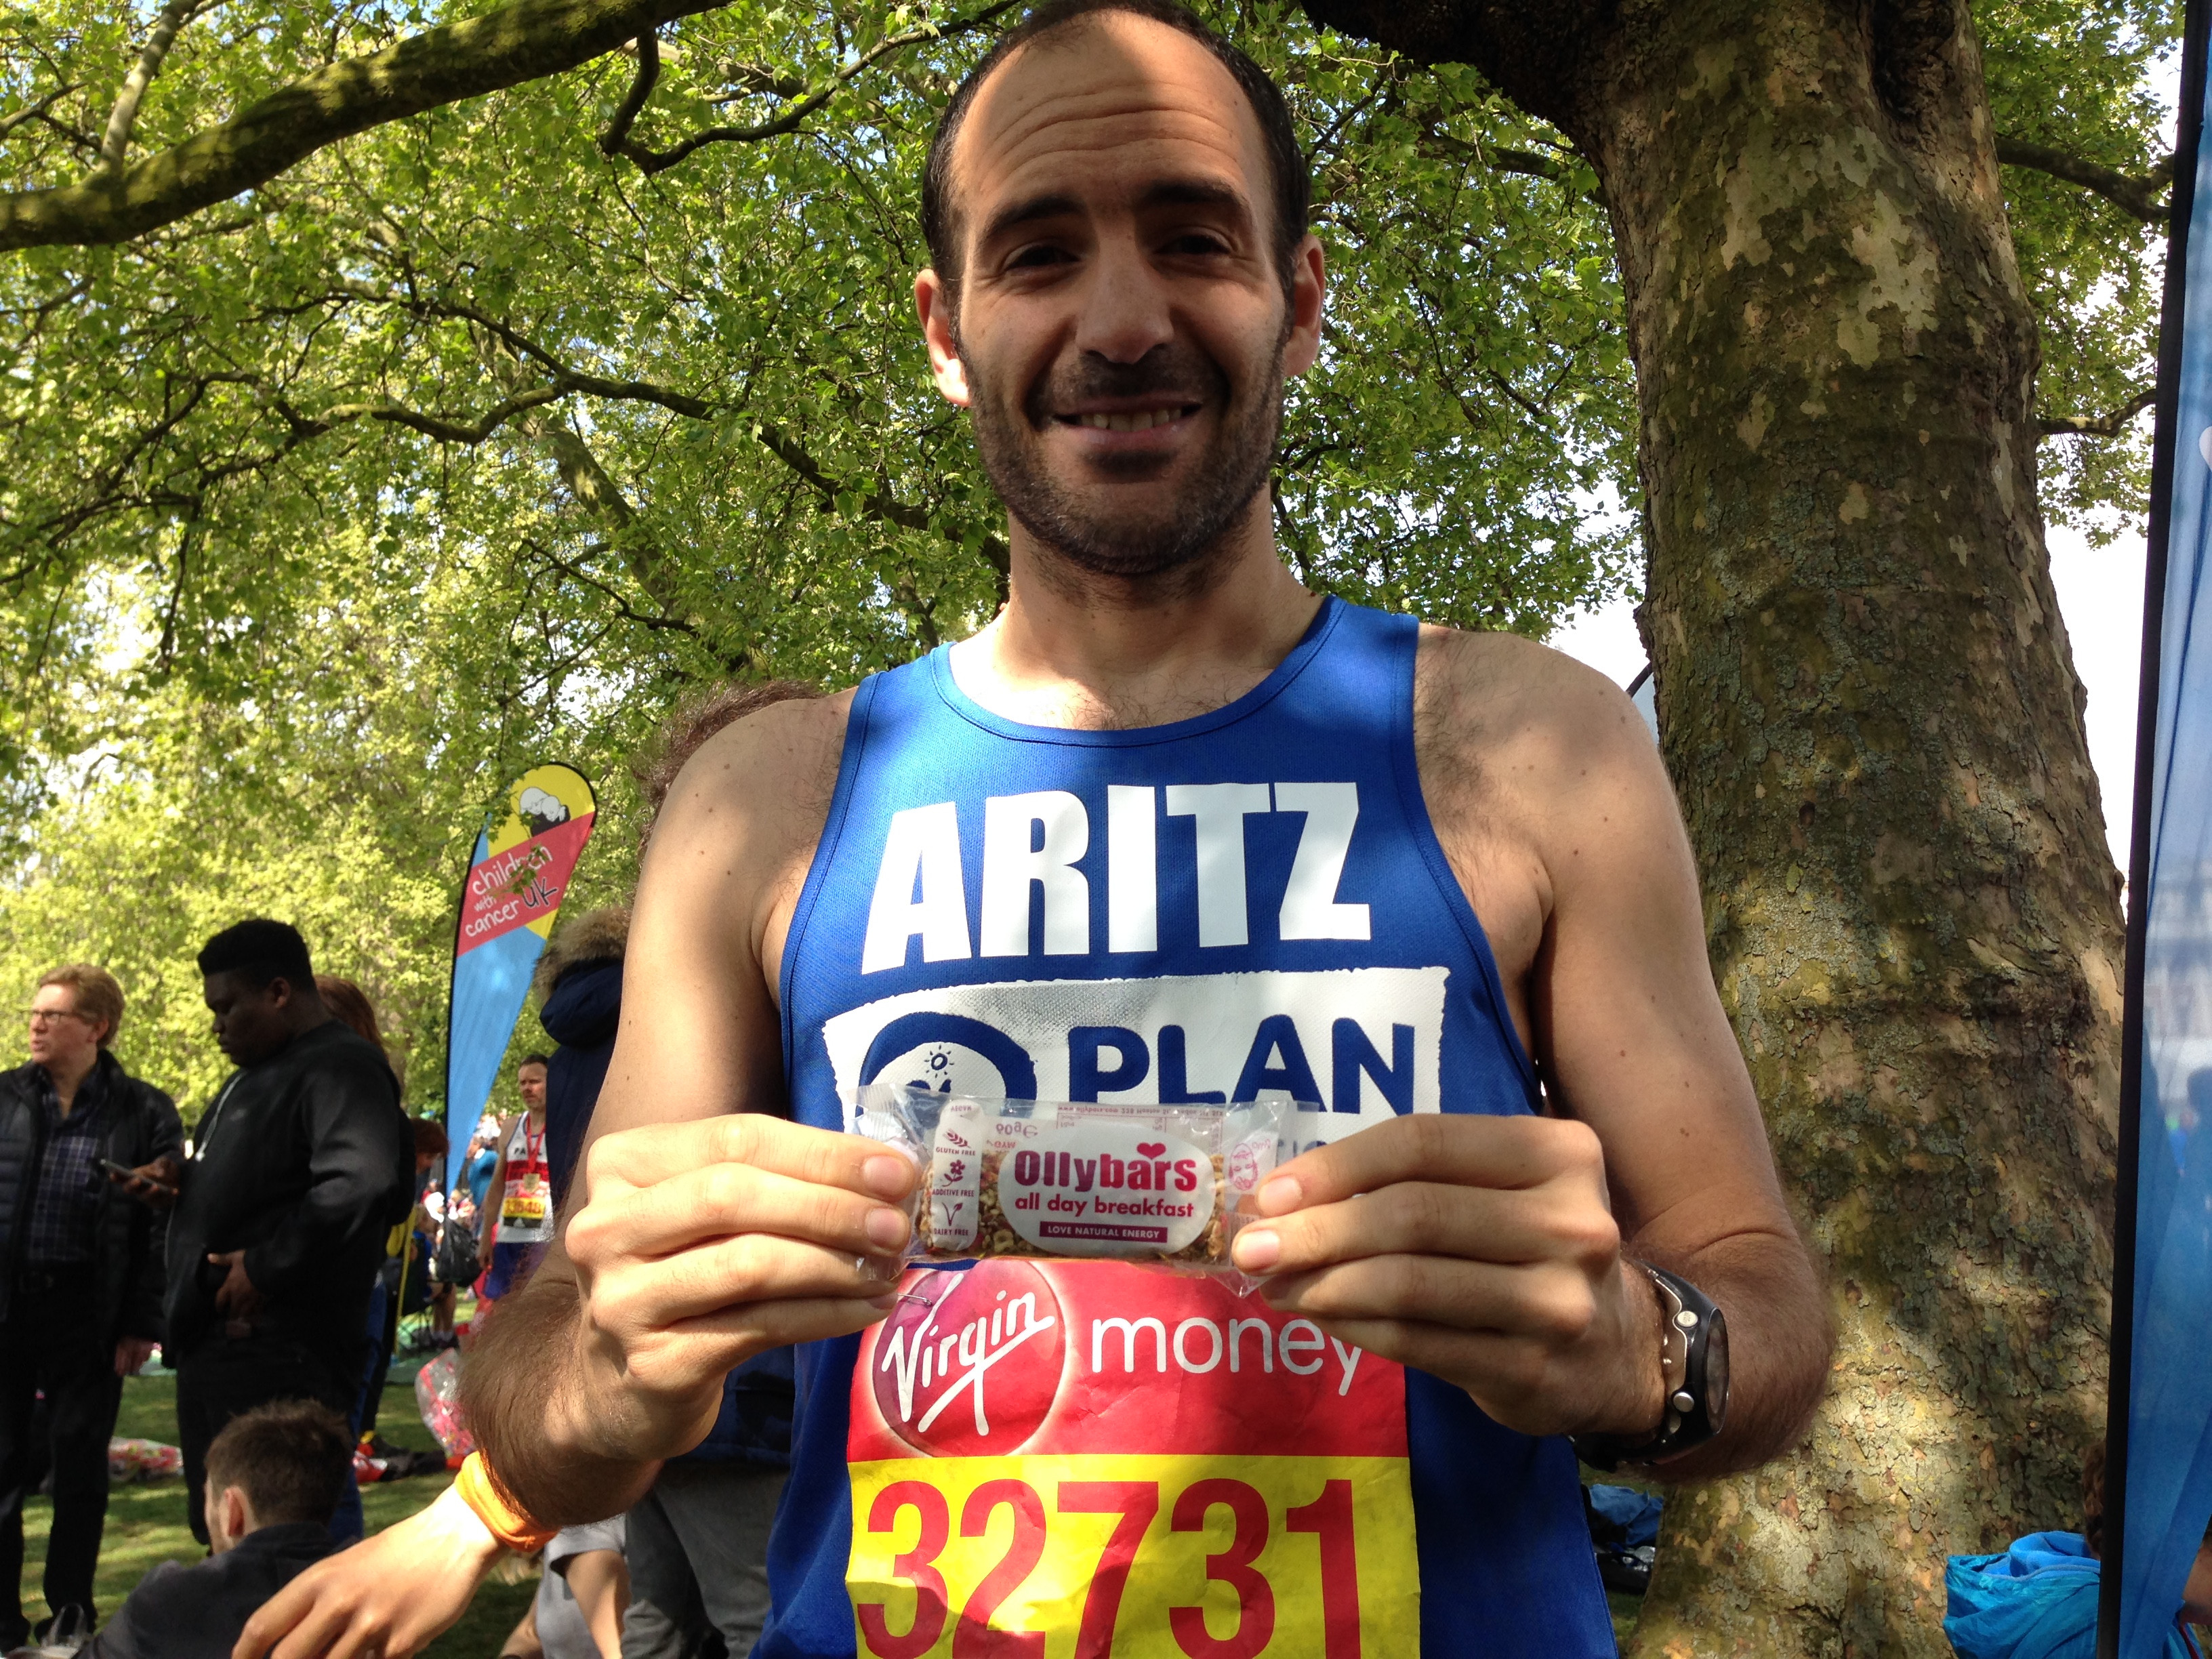 Plan runner Artiz celebrates at the finish of the London Marathon